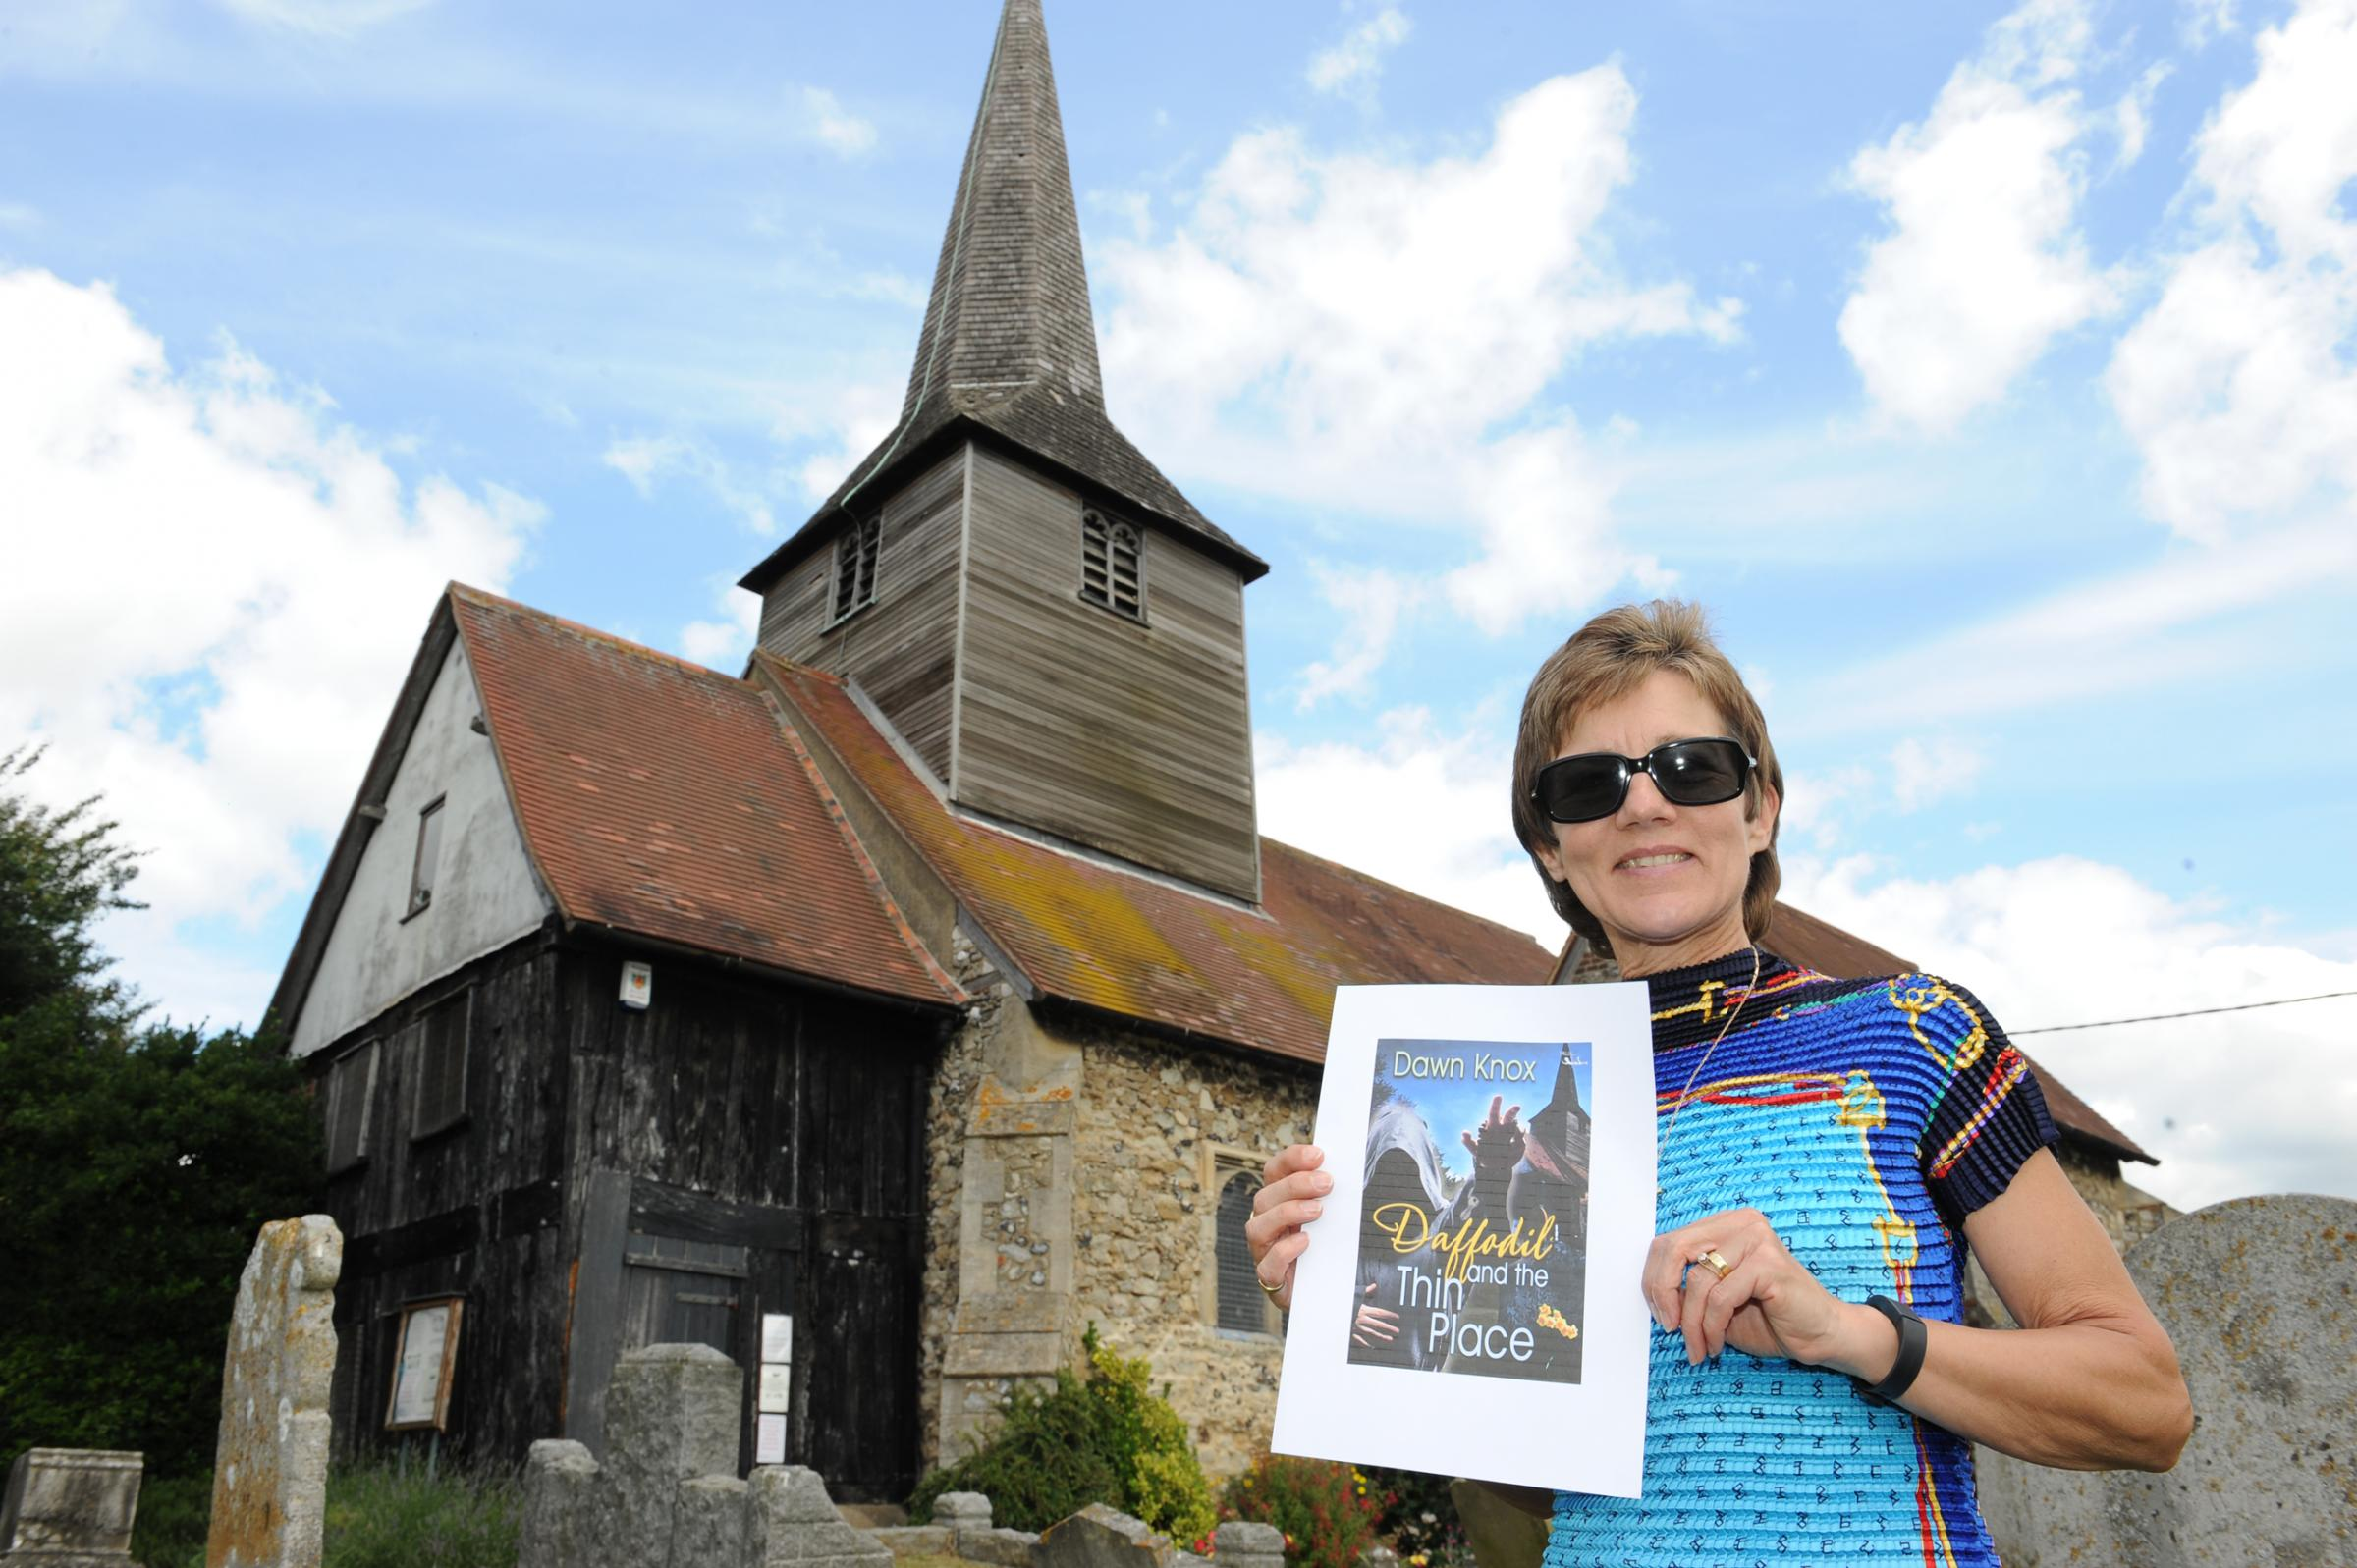 Fundraiser–Dawn Knox with her book cover at the church